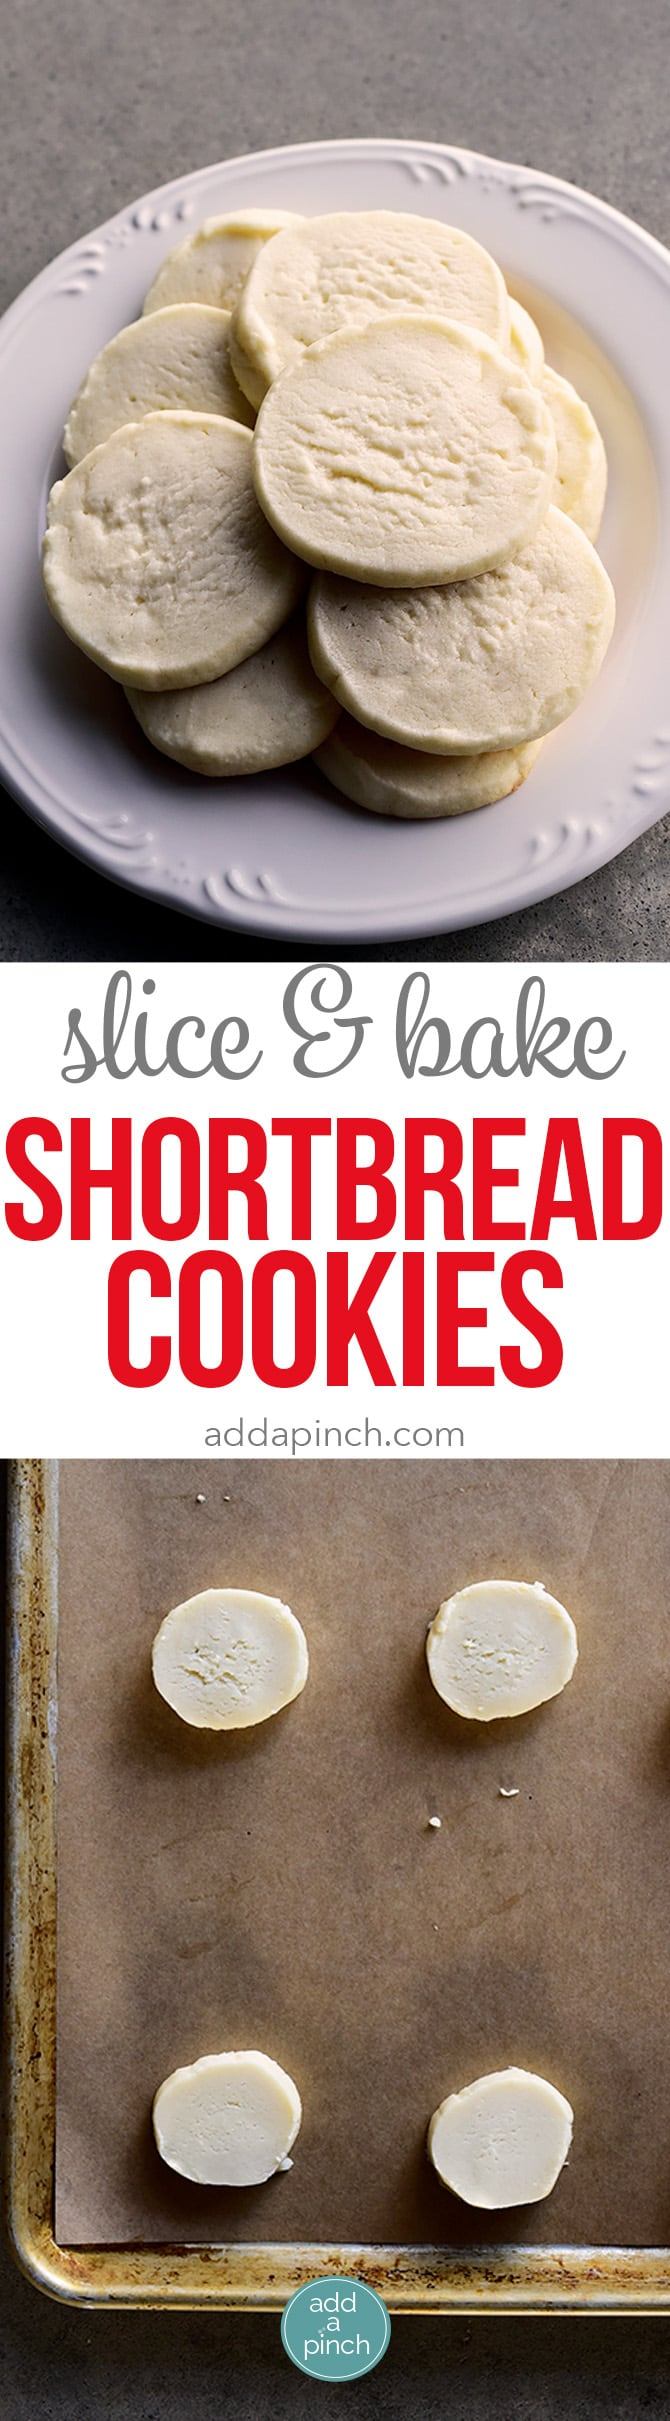 Slice and Bake Shortbread Cookies Recipe - Slice and Bake Shortbread Cookies make an easy and delicious cookie recipe. Made with just four ingredients these shortbread cookies are a great make ahead cookie for all sorts of occasions. // addapinch.com